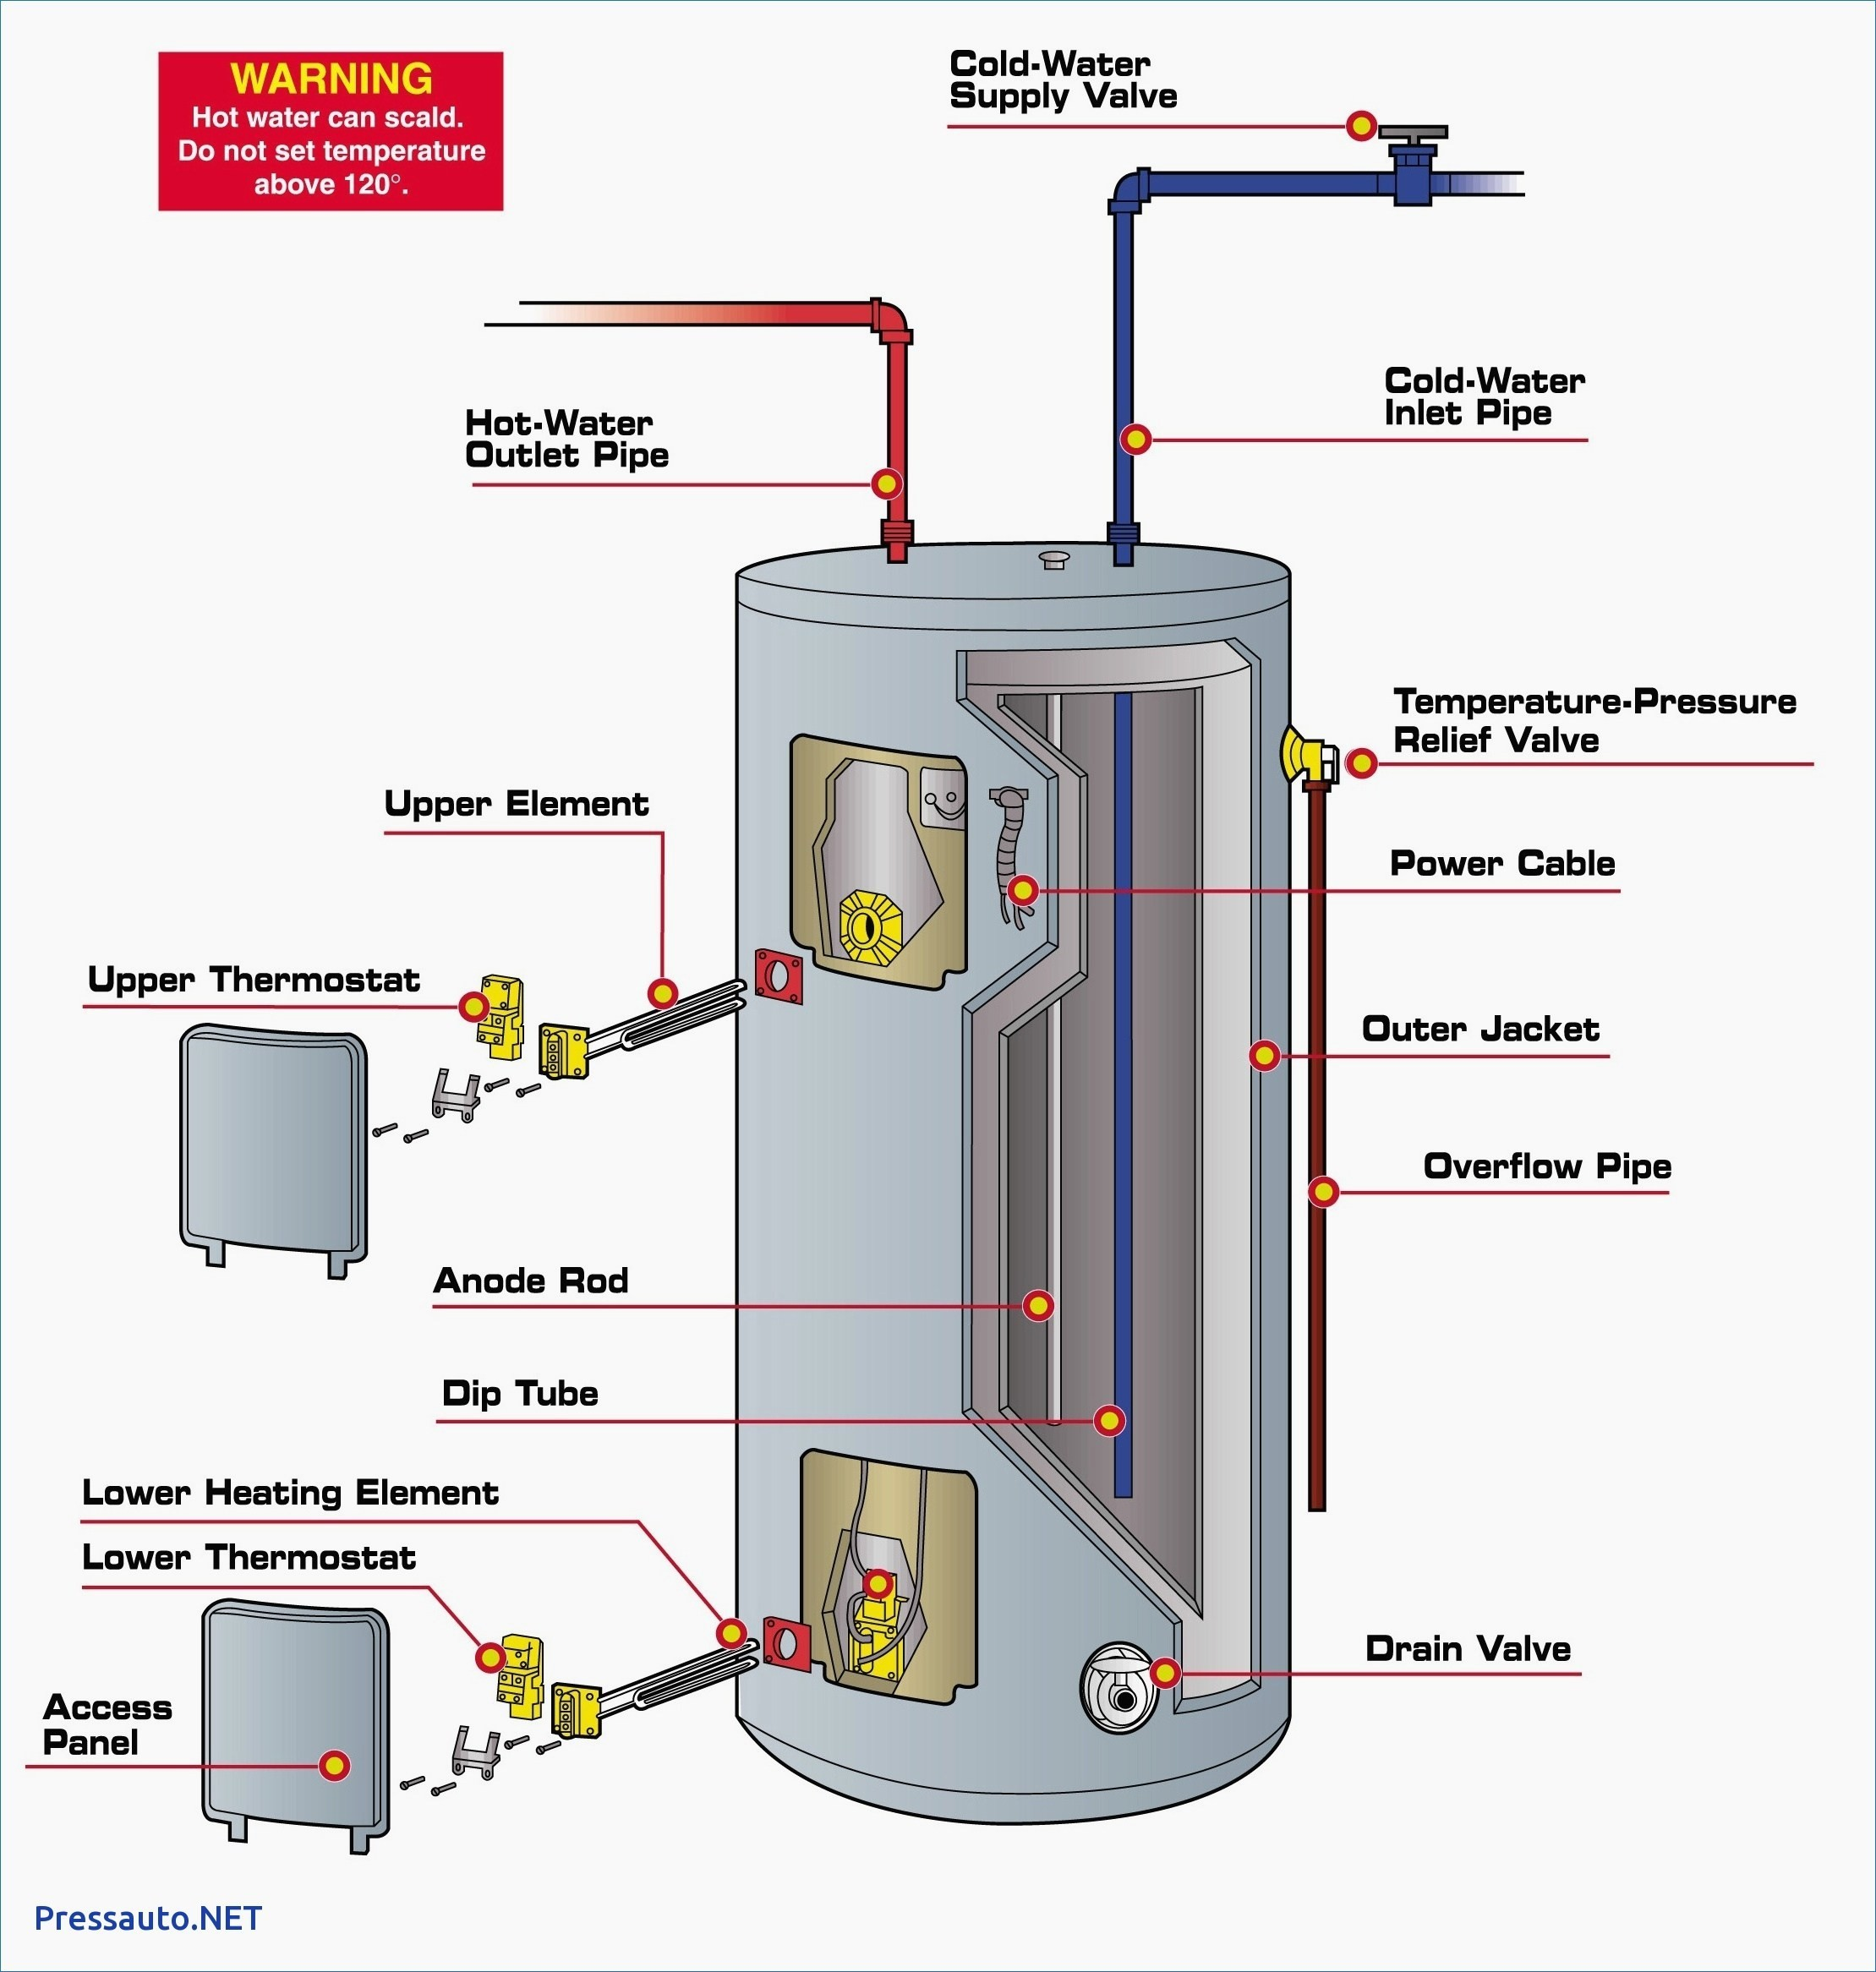 atwood excalibur wiring diagram experts of wiring diagram u2022 rh  evilcloud co uk Atwood Furnace Ladder Diagram for Wiring Suburban RV Water  Heater Wiring ...